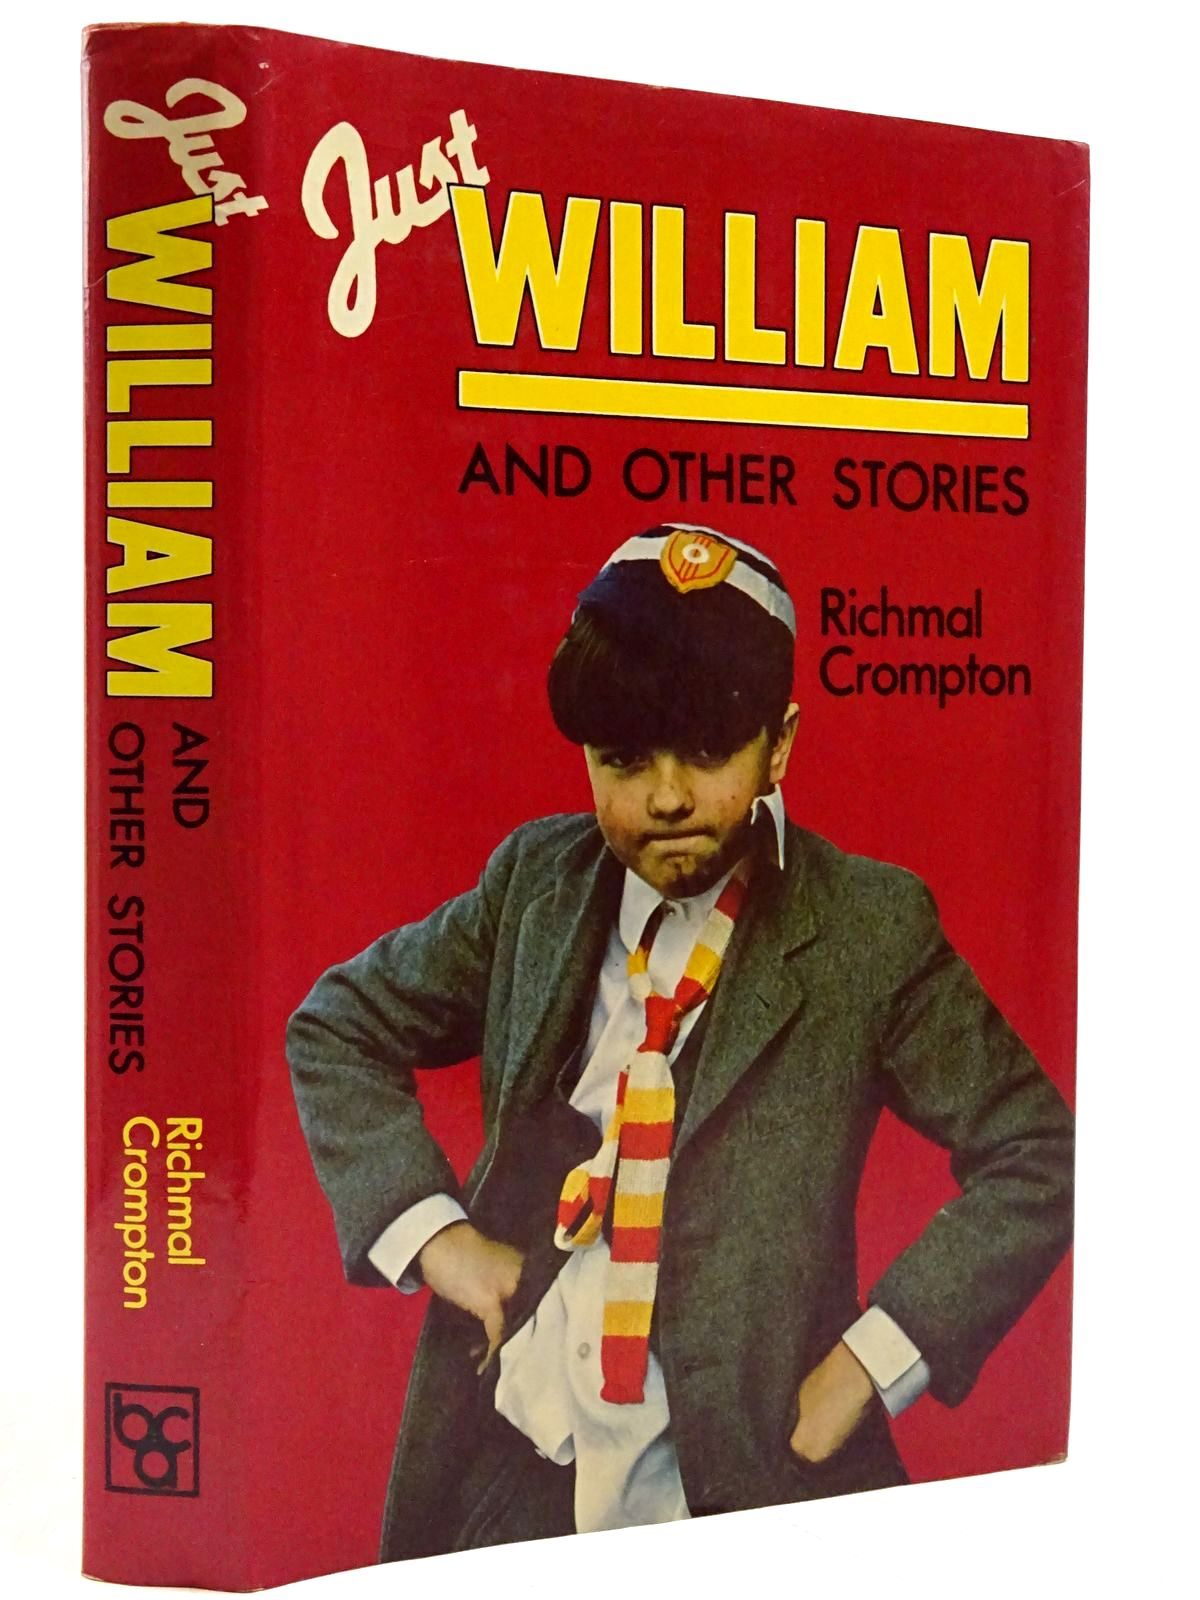 Photo of JUST WILLIAM AND OTHER STORIES written by Crompton, Richmal published by Book Club Associates (STOCK CODE: 2131408)  for sale by Stella & Rose's Books